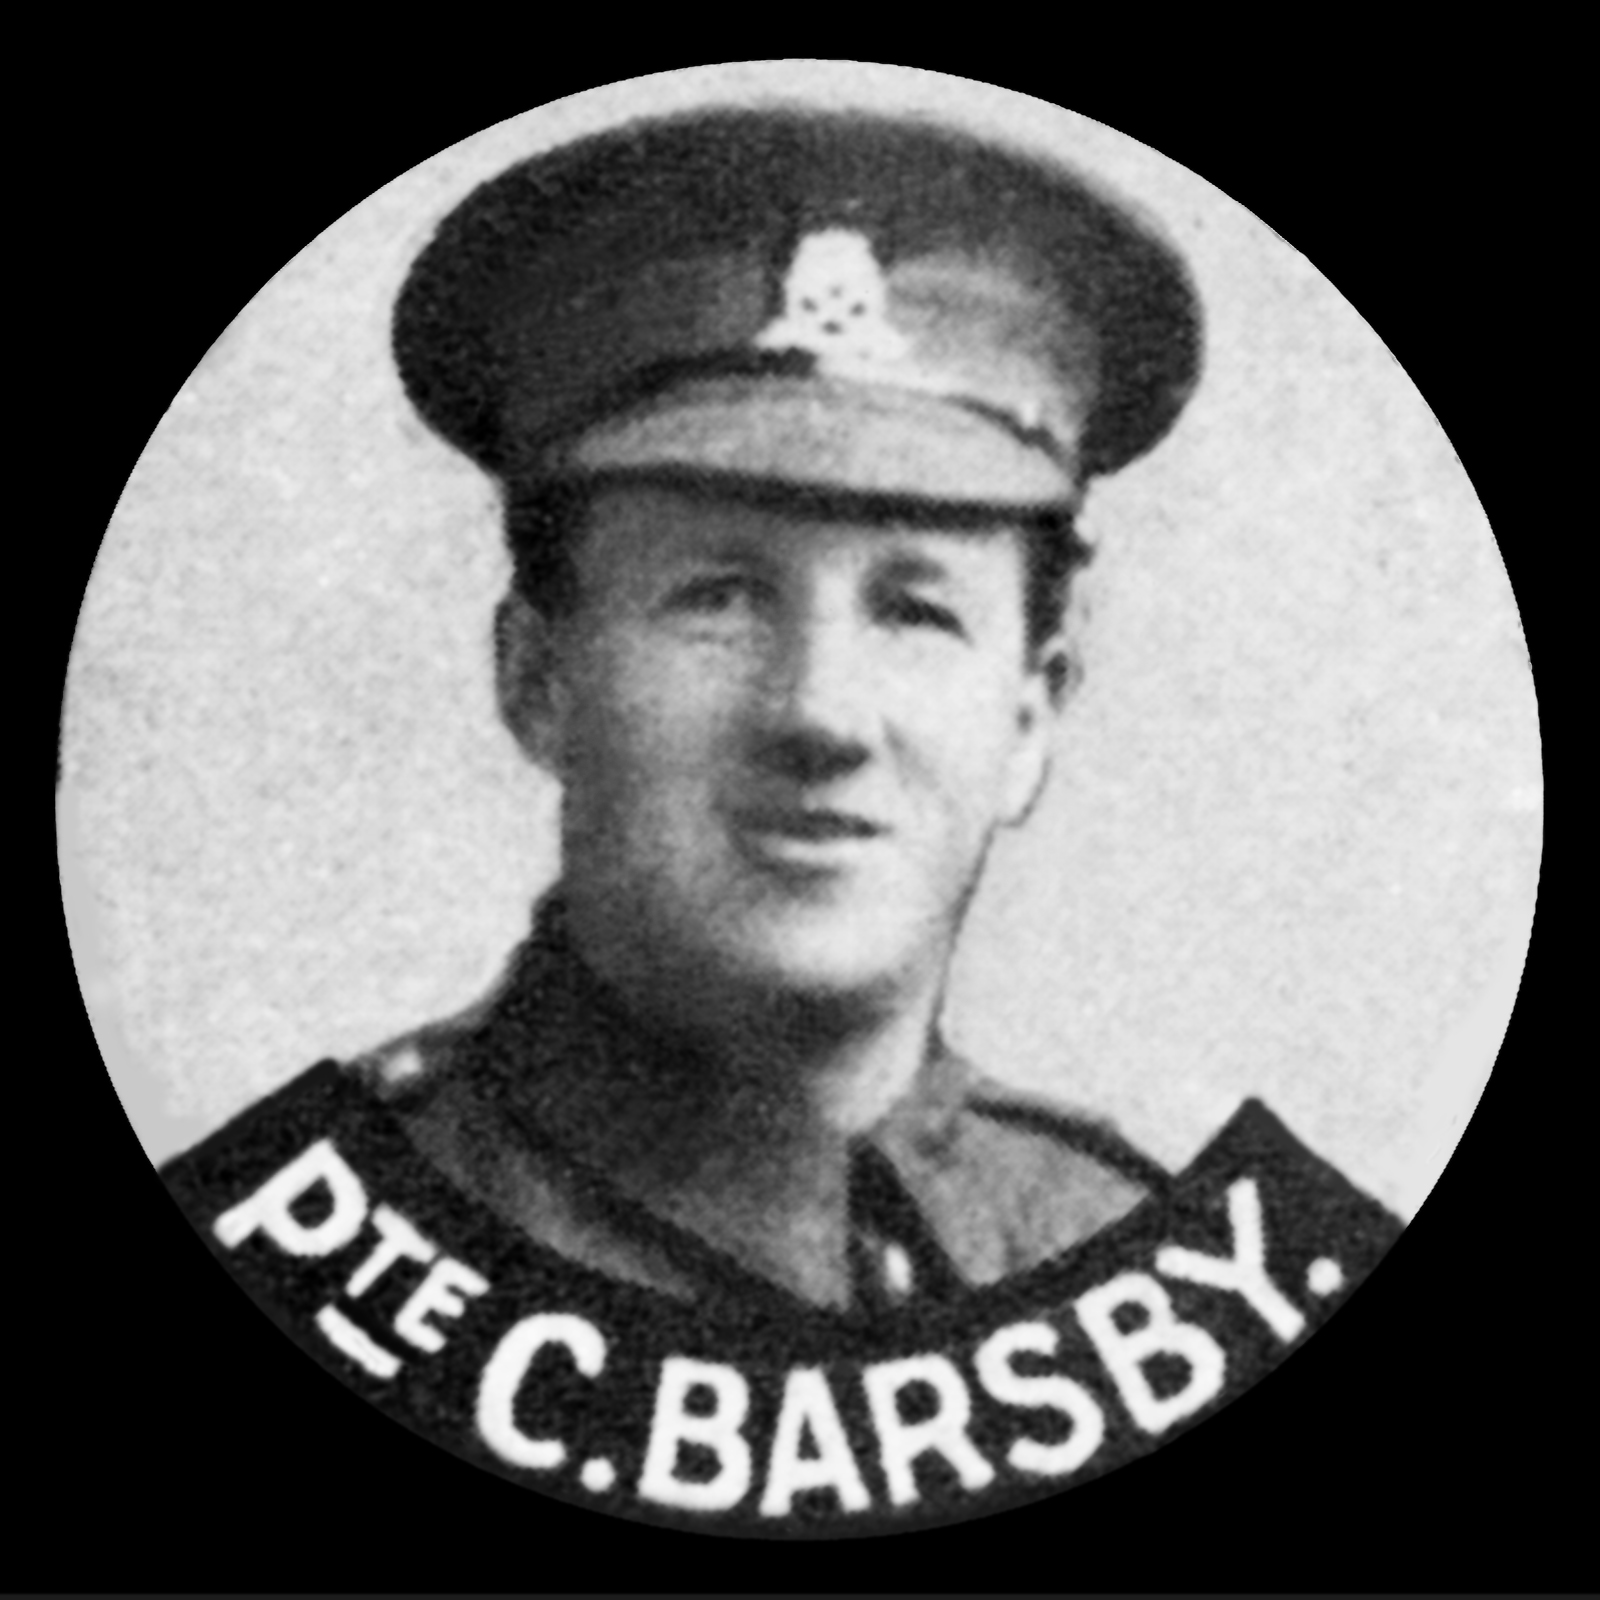 BARSBY Charles